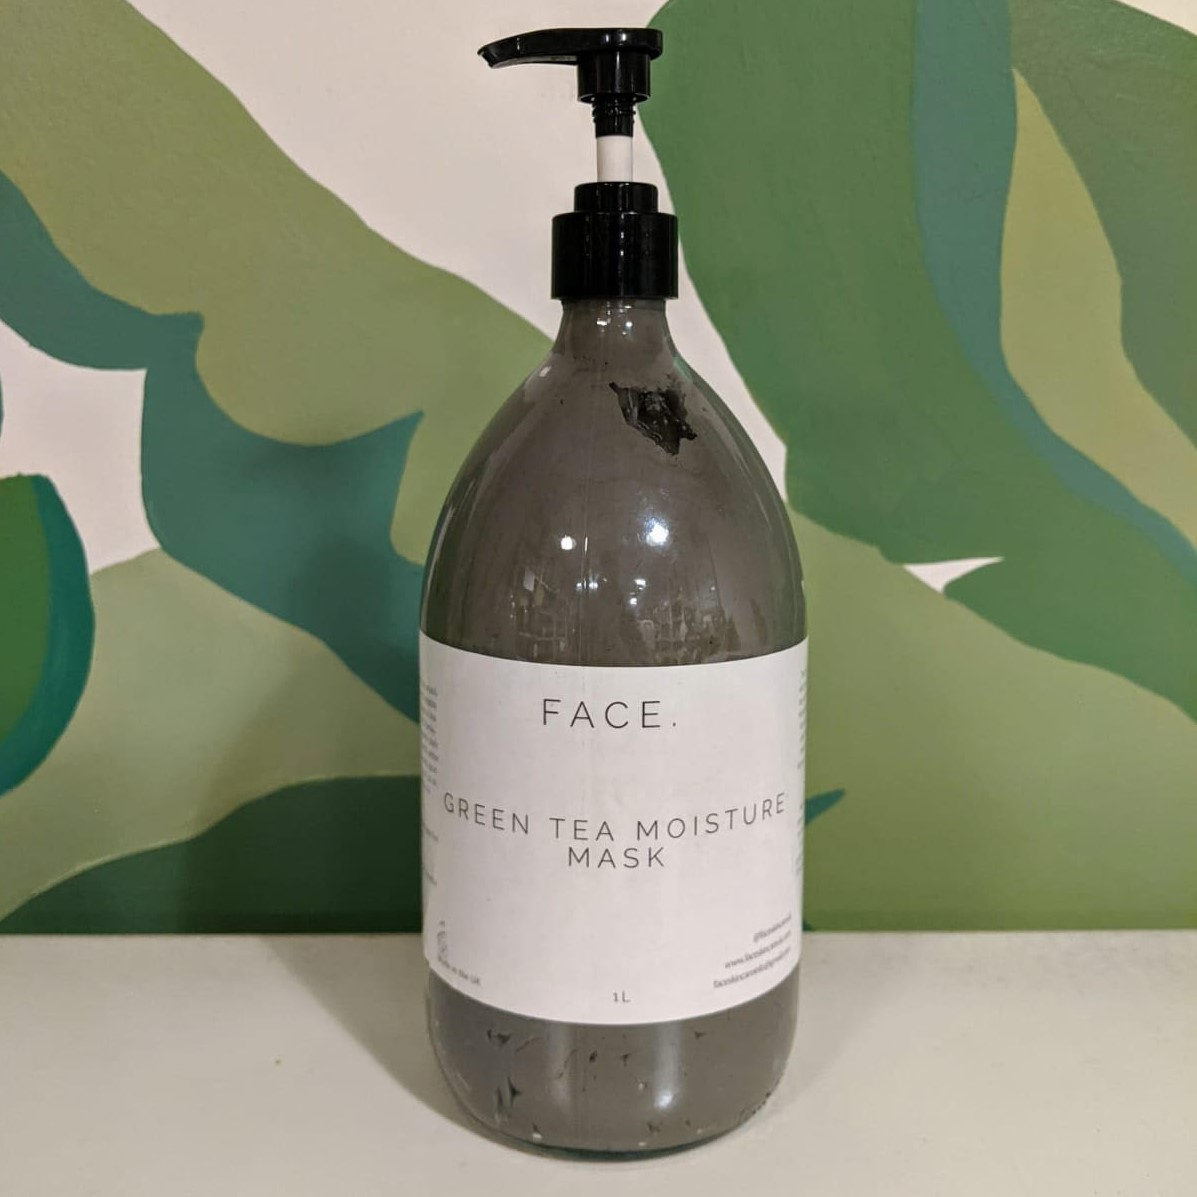 Green Tea Moisture Mask (Refill) by FACE.